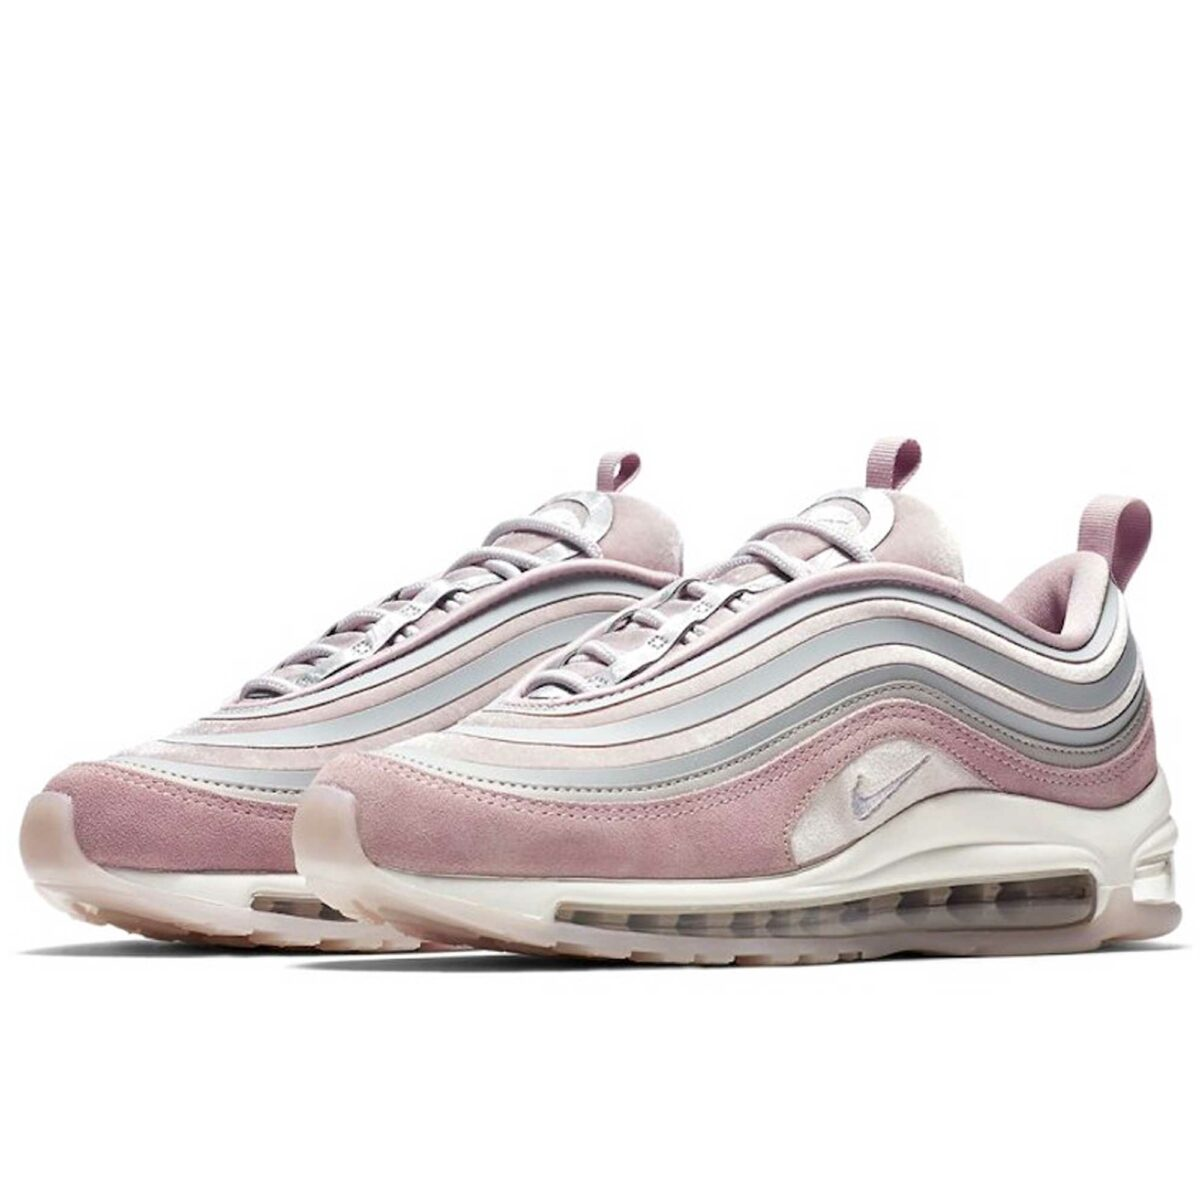 nike air max 97 ultra particle rose AH6805_002 купить